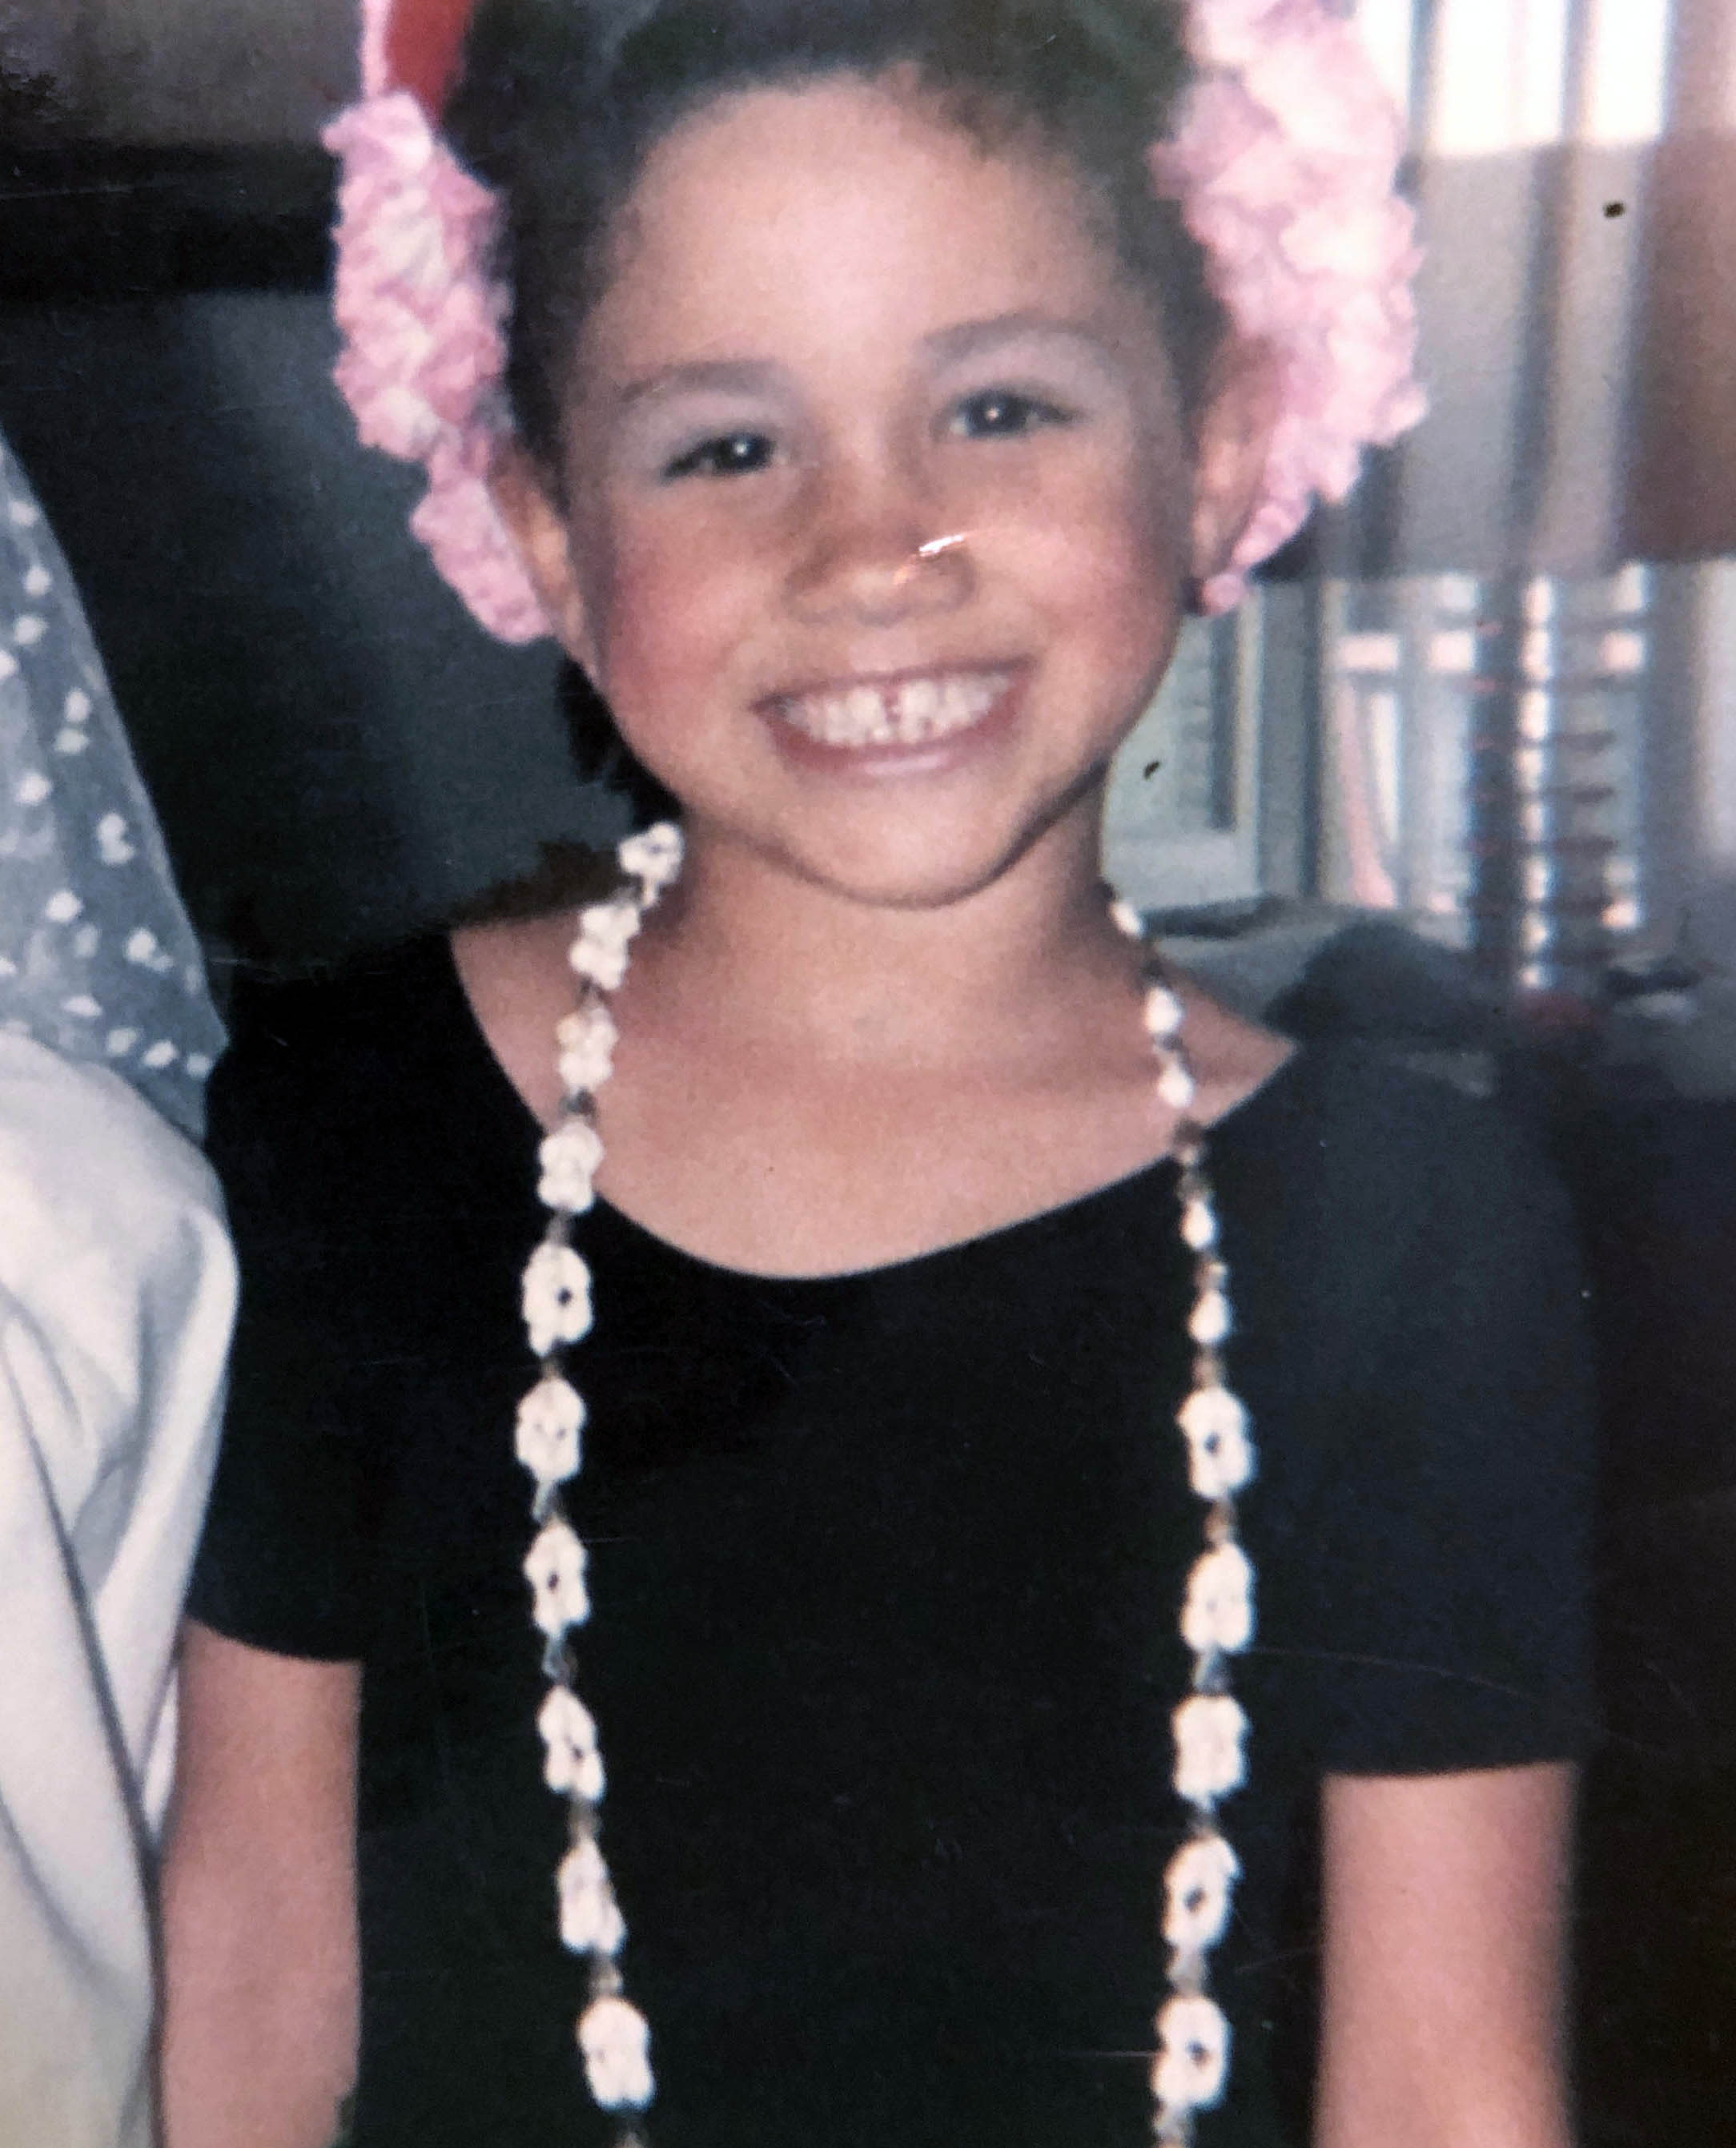 Meghan Markle Hasn't Changed A Bit! Adorable Pics Revealed